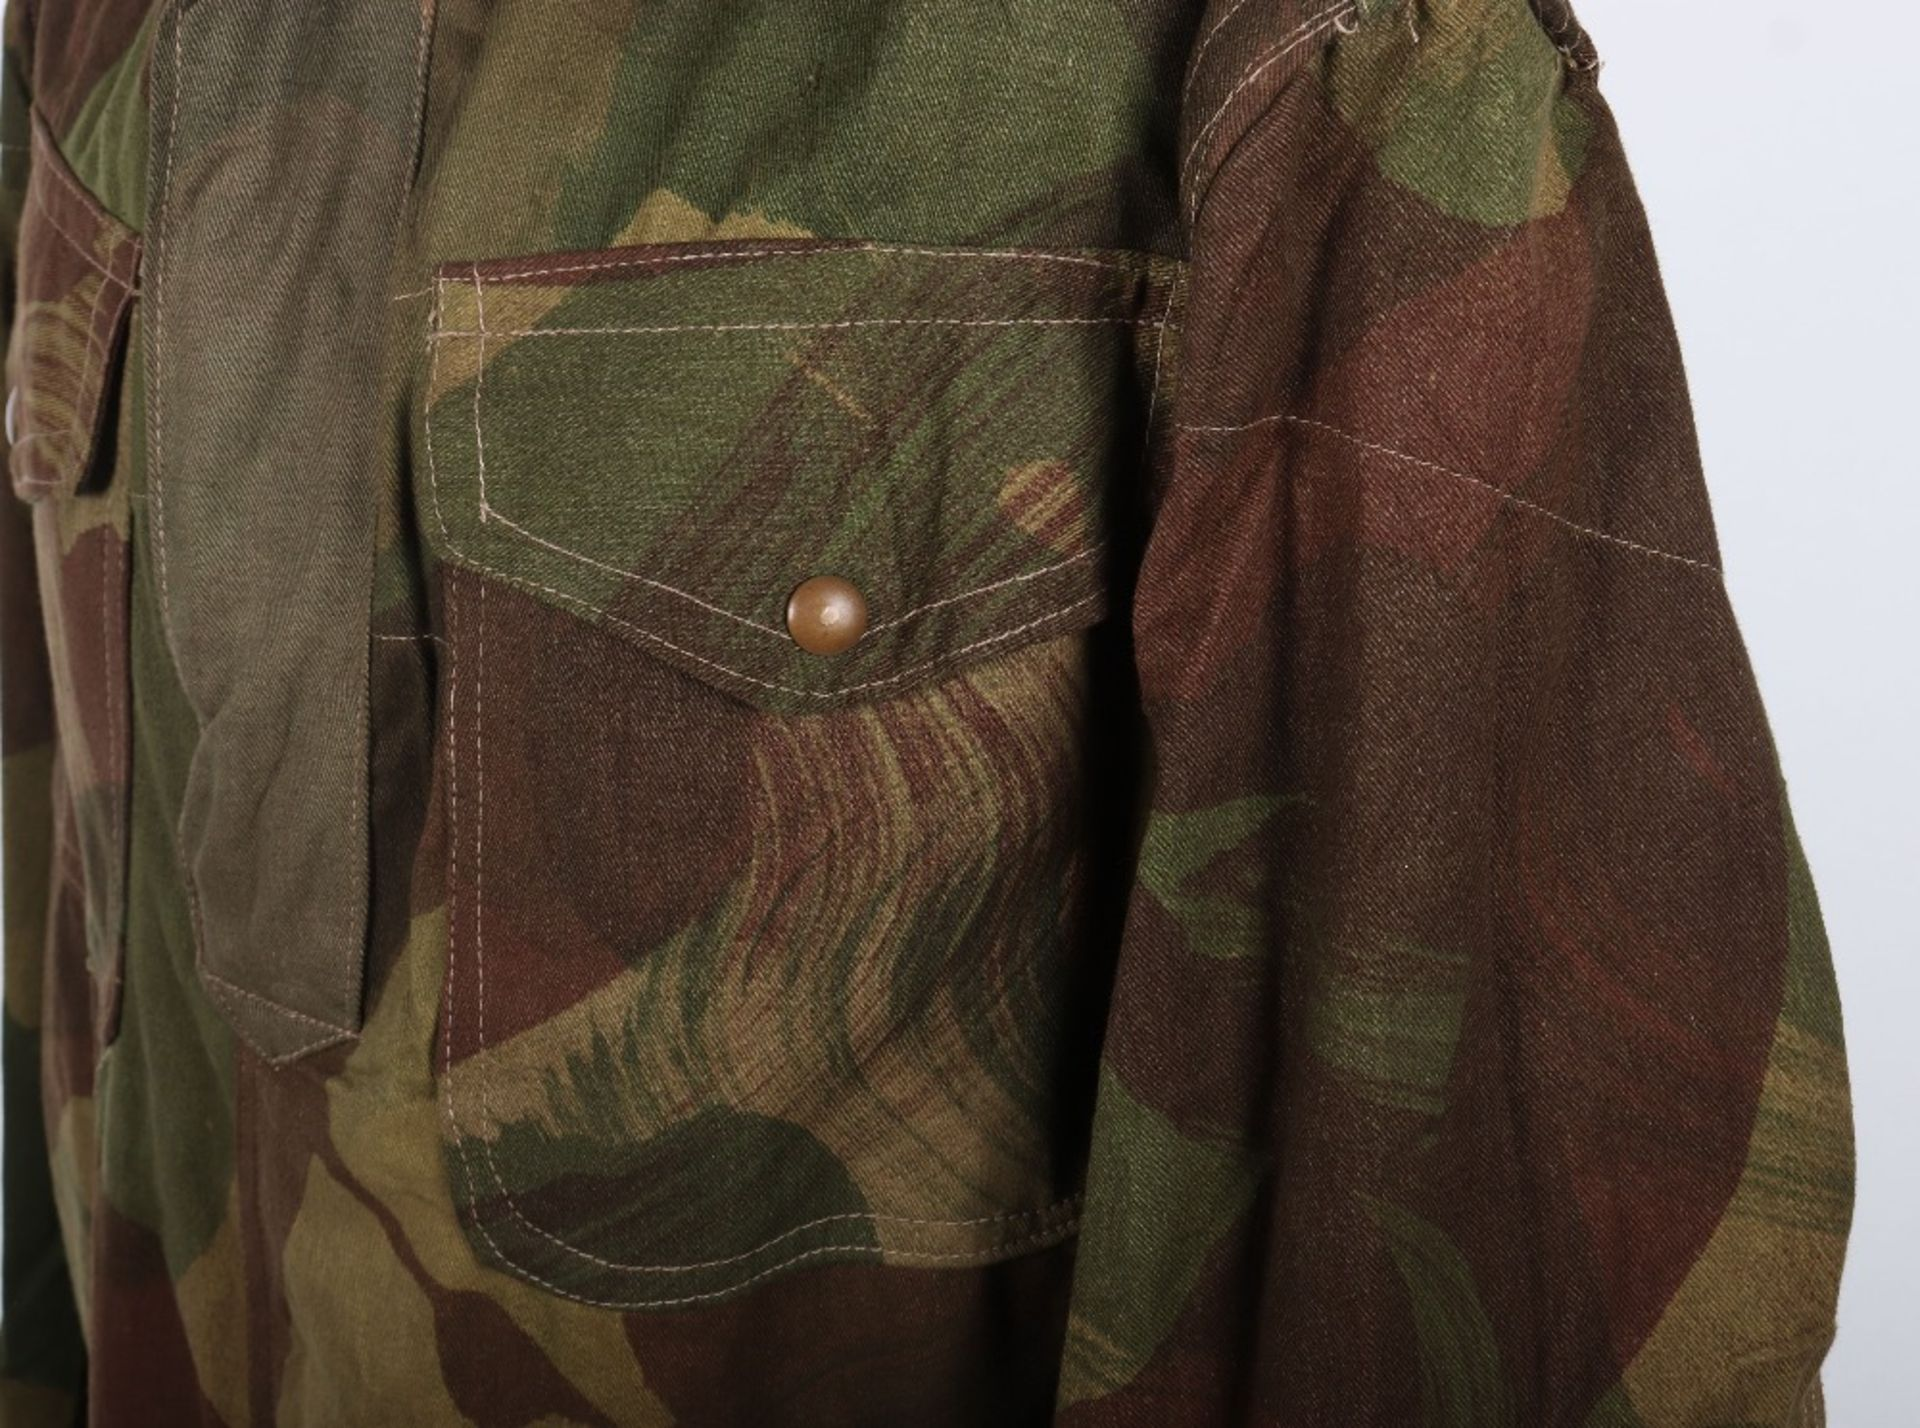 Mint Condition Large Size Airborne Forces Denison Smock - Image 6 of 17